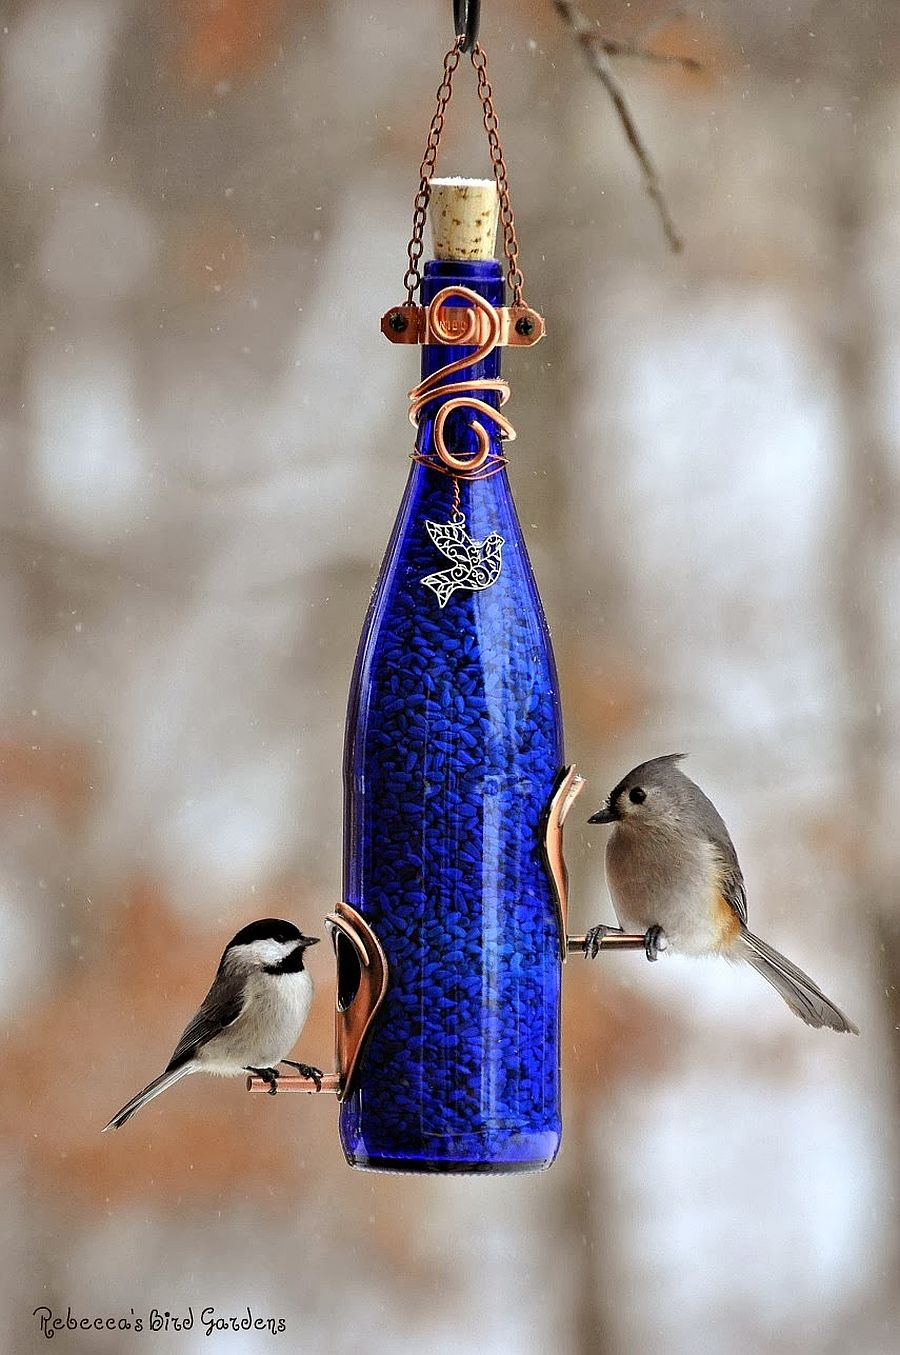 1559675287 507 40 diy bird feeder ideas for a live garden - 40 DIY Bird Feeder Ideas for a Live Garden